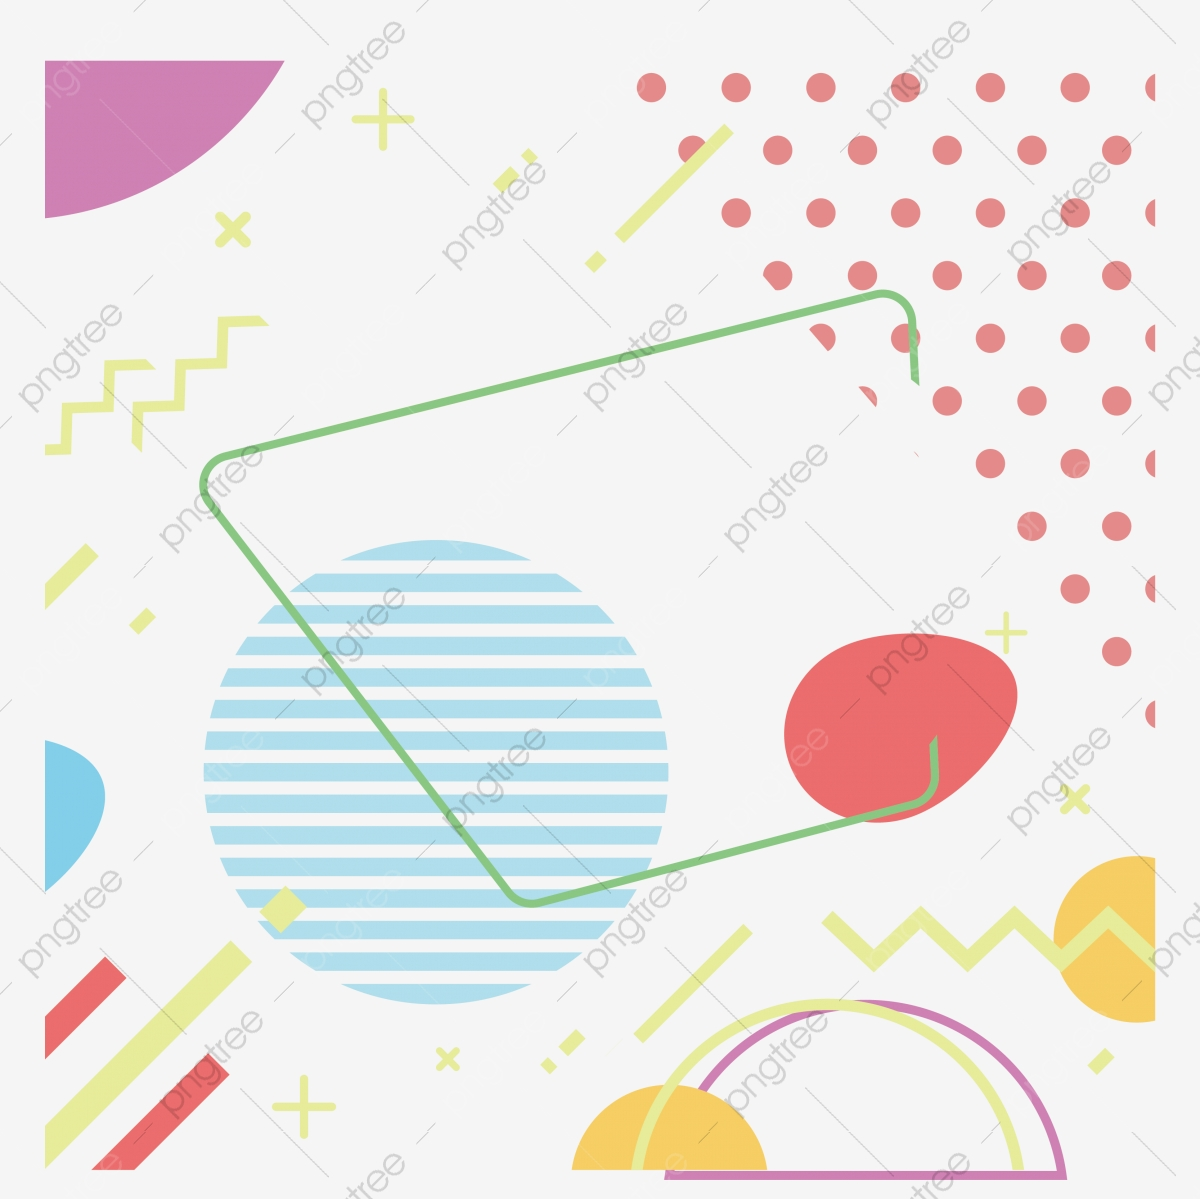 Foto Background Kelas Keren Banner Background Png Vector Psd And Clipart With Transparent Background For Free Download Pngtree